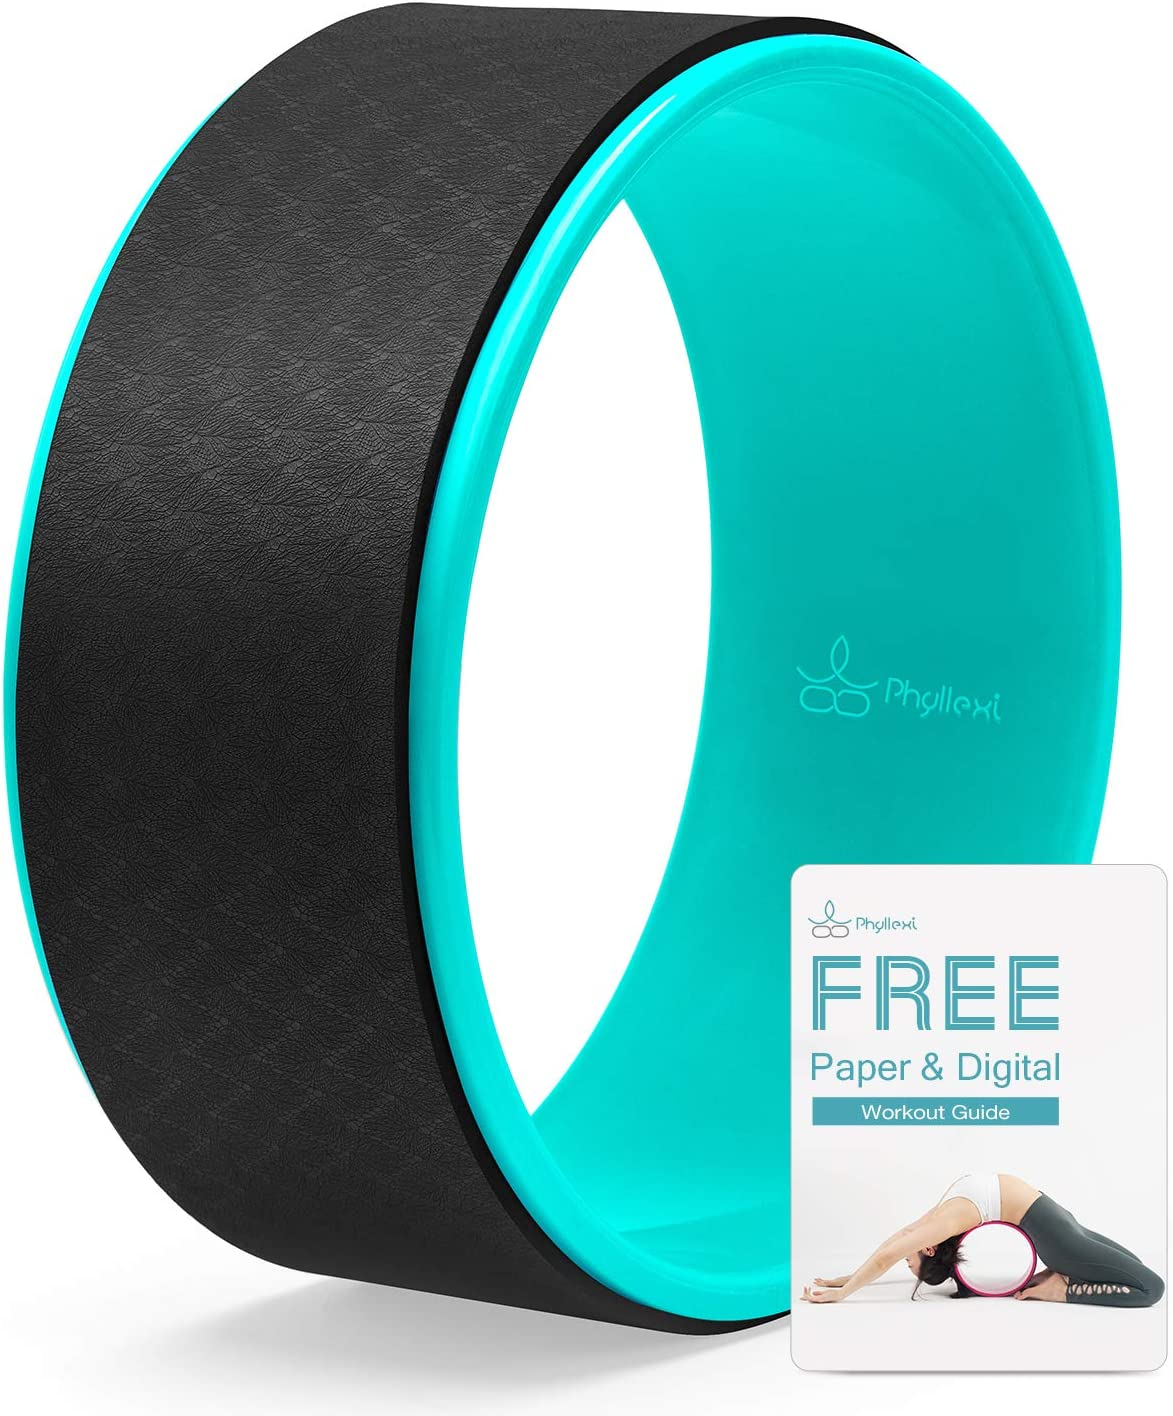 PHYLLEXI Yoga Wheel for Back Pain - Pro Grade Strong & Comfortable Large Dharma Yoga Wheel for Stretching and Improving Backbends